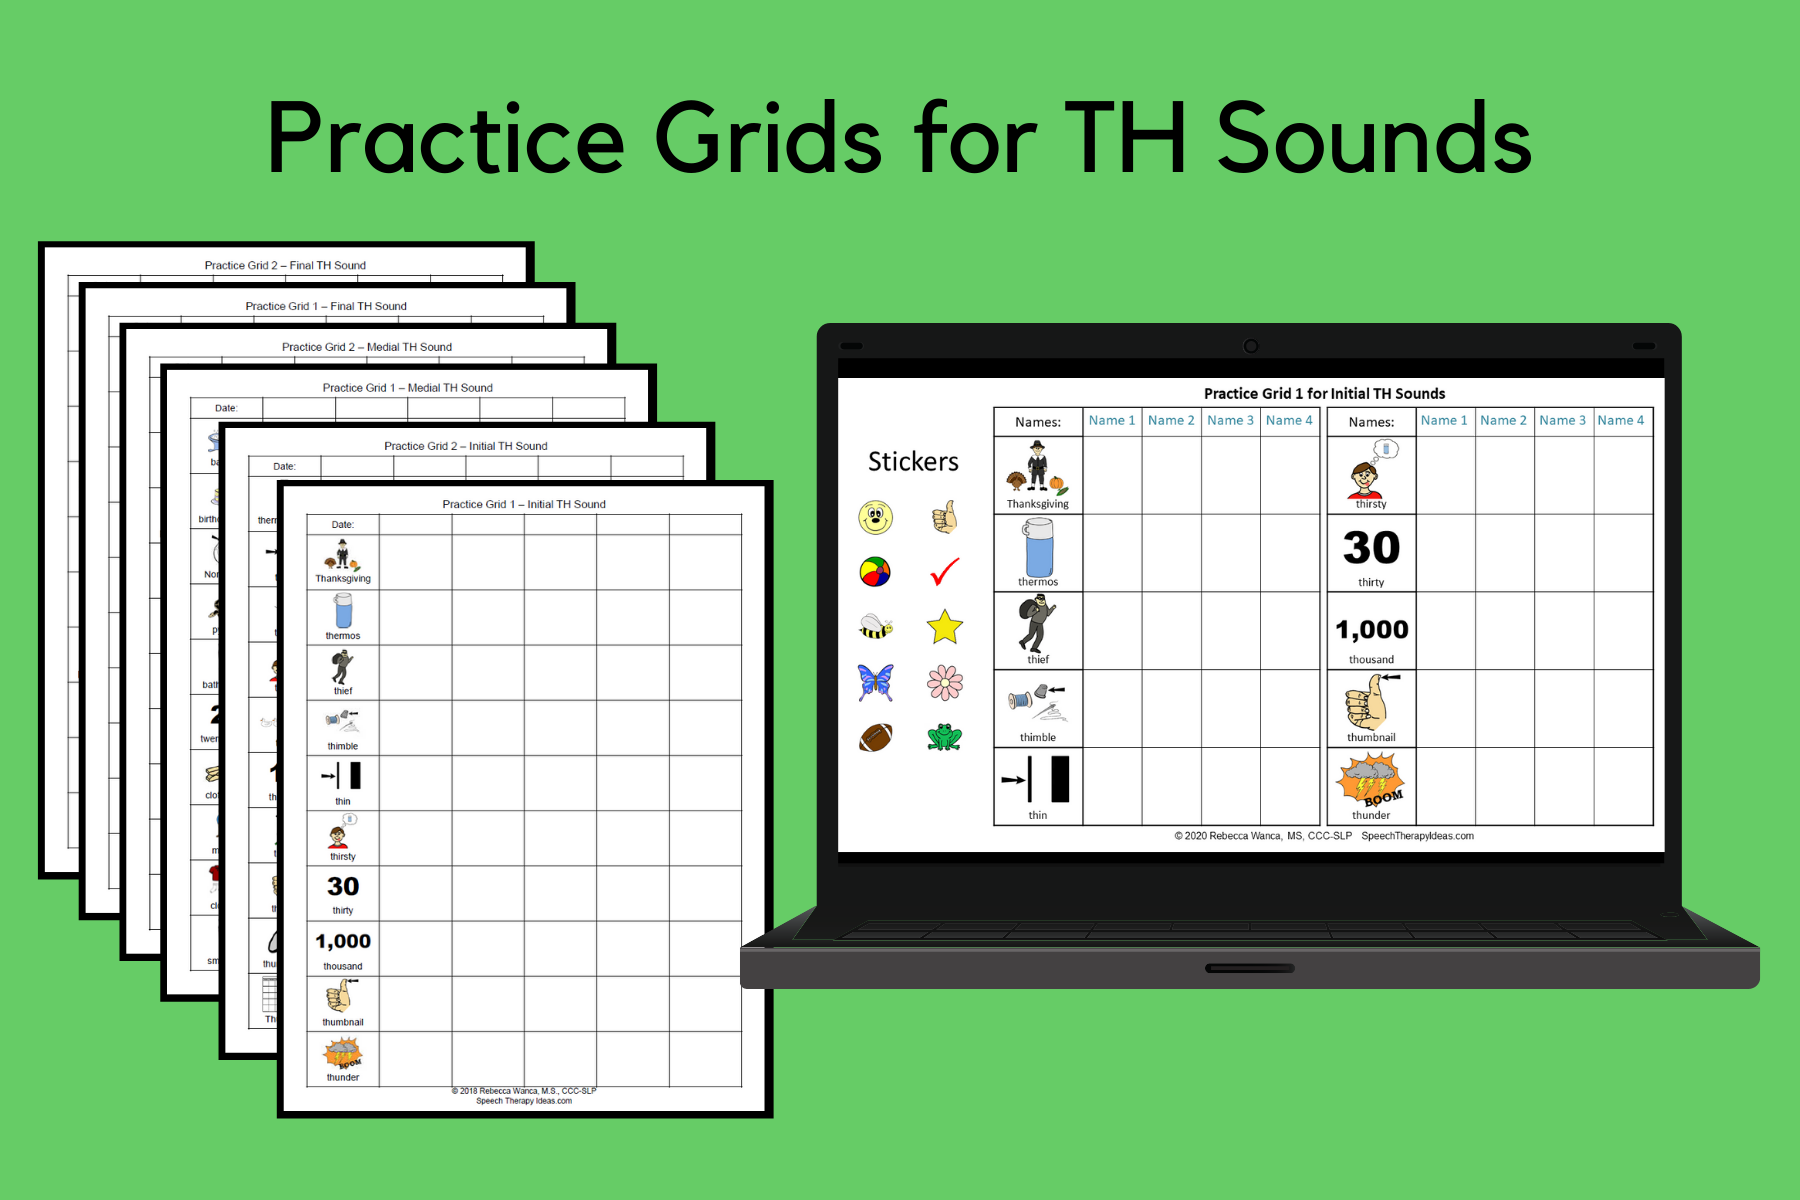 Practice Grids for TH Sounds